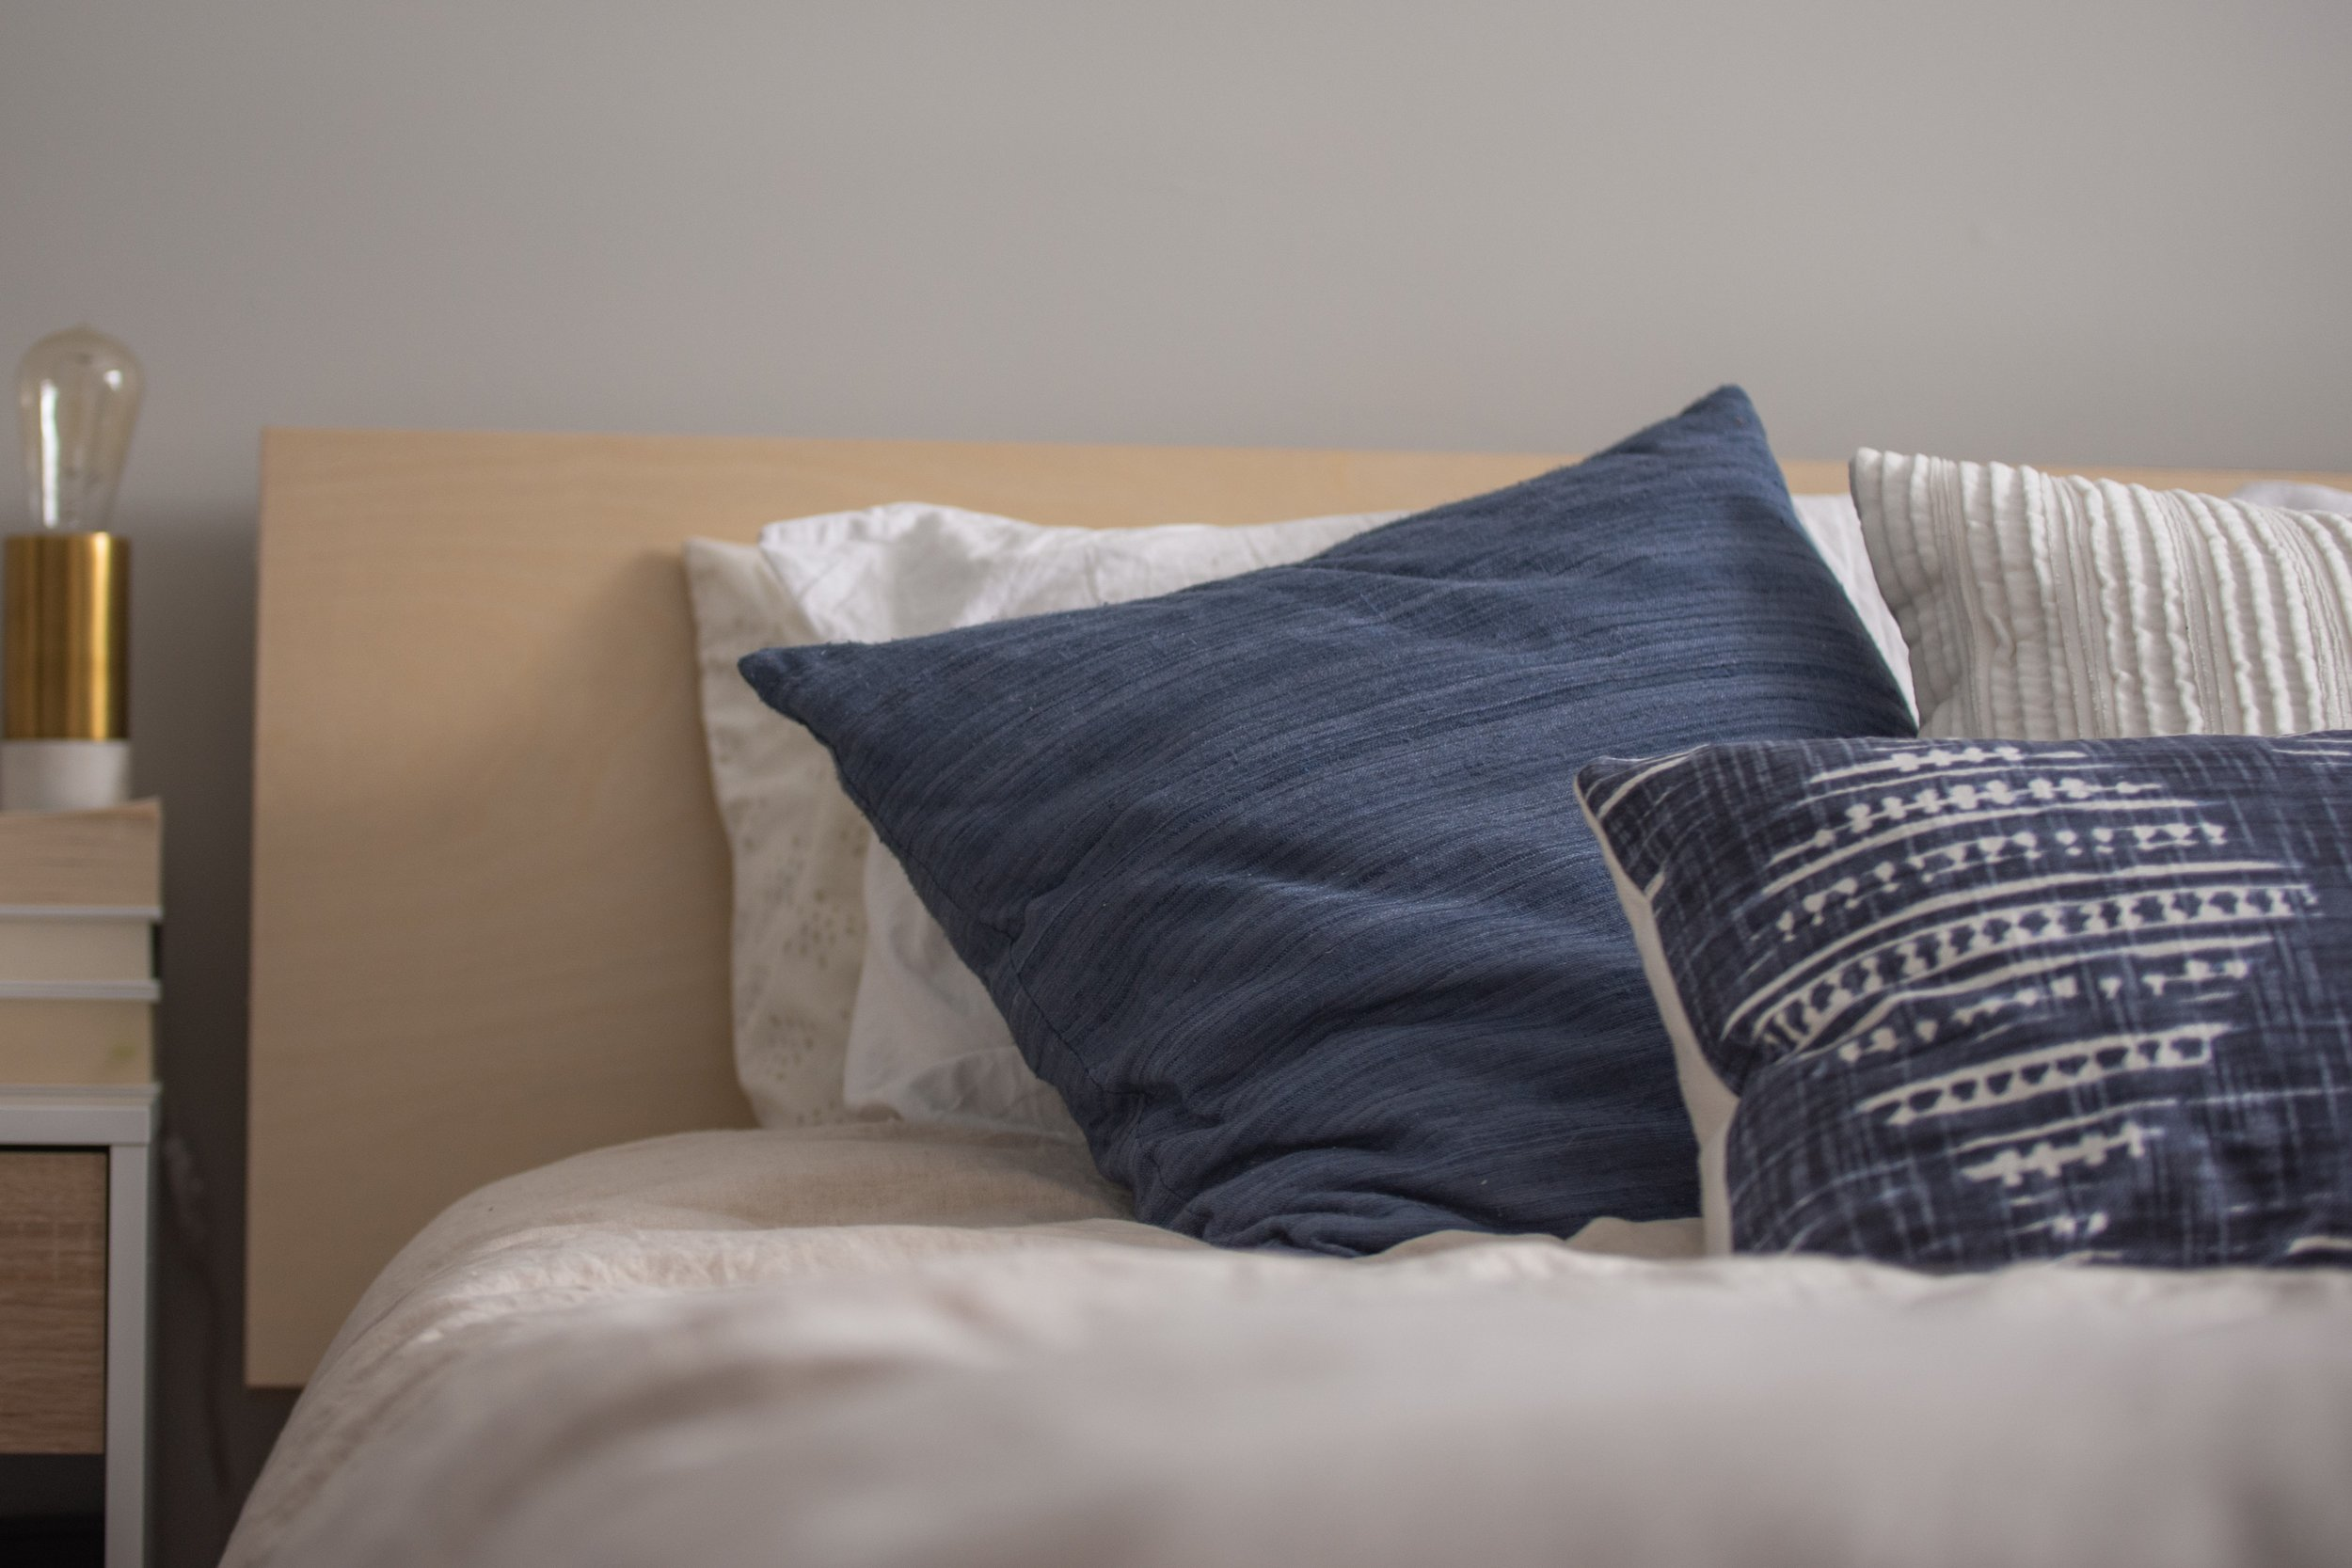 Velvet and Cotton Pillows on a Bed.jpg